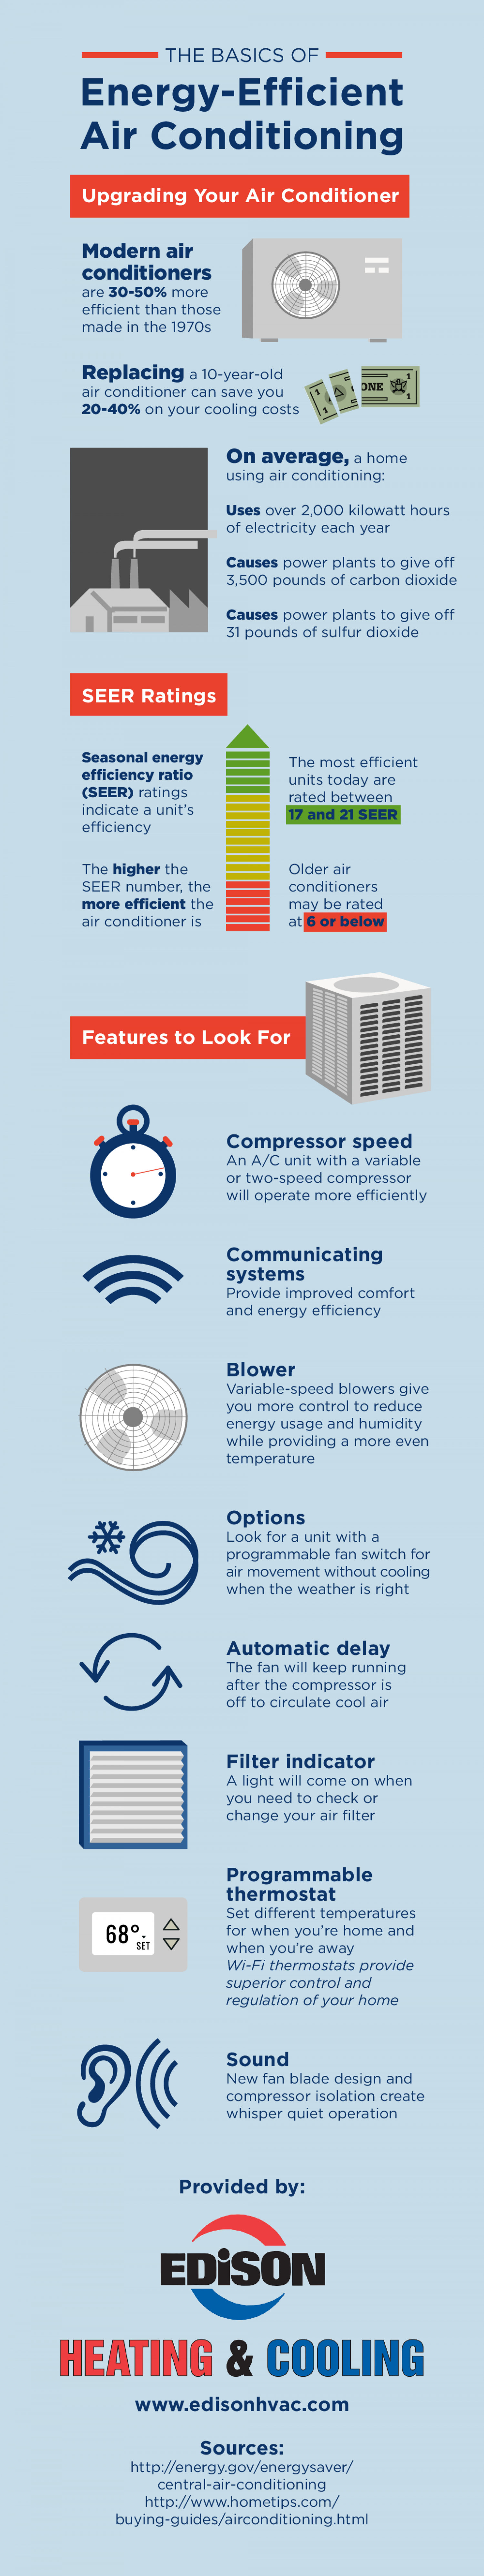 The Basics of Energy-Efficient Air Conditioning Infographic